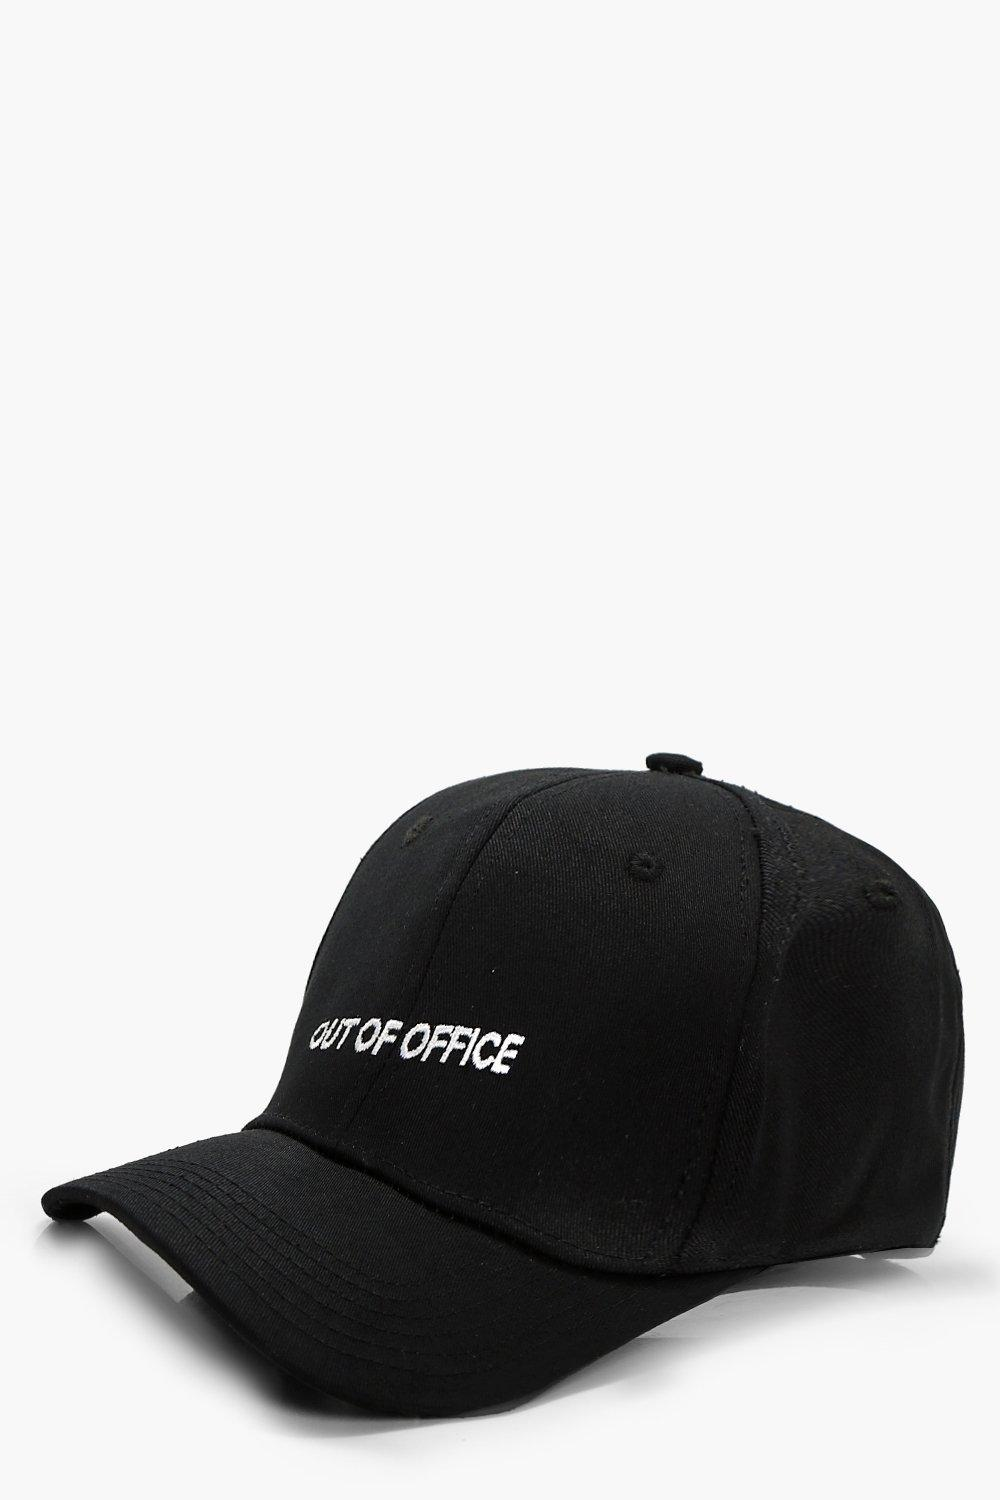 Out Of Office Baseball Cap - black - Emily Out Of